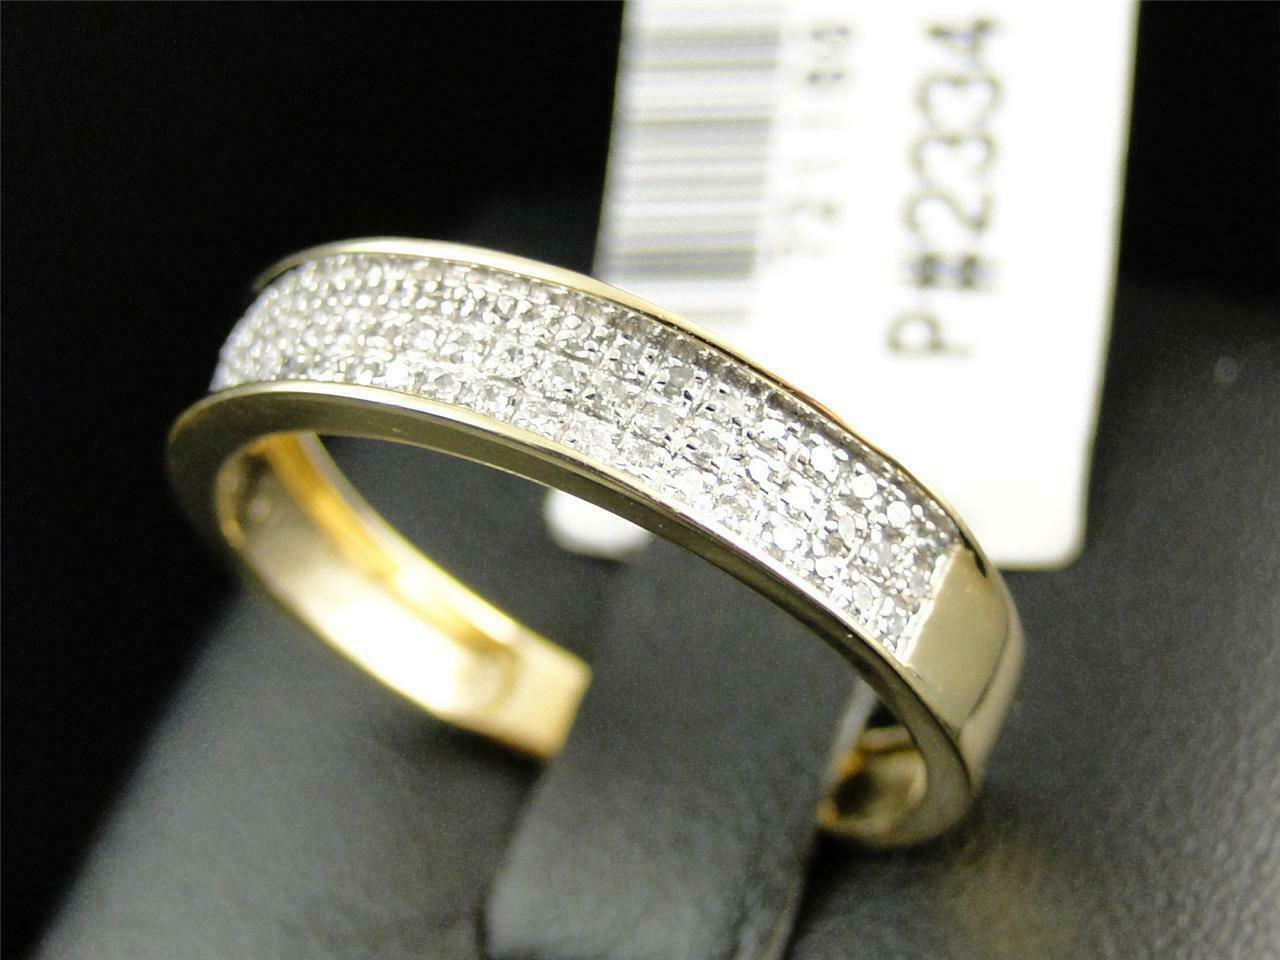 0.50Ct Round Cut Diamond Mens Wedding Engagement Band Ring 14K Yellow Gold Over 5